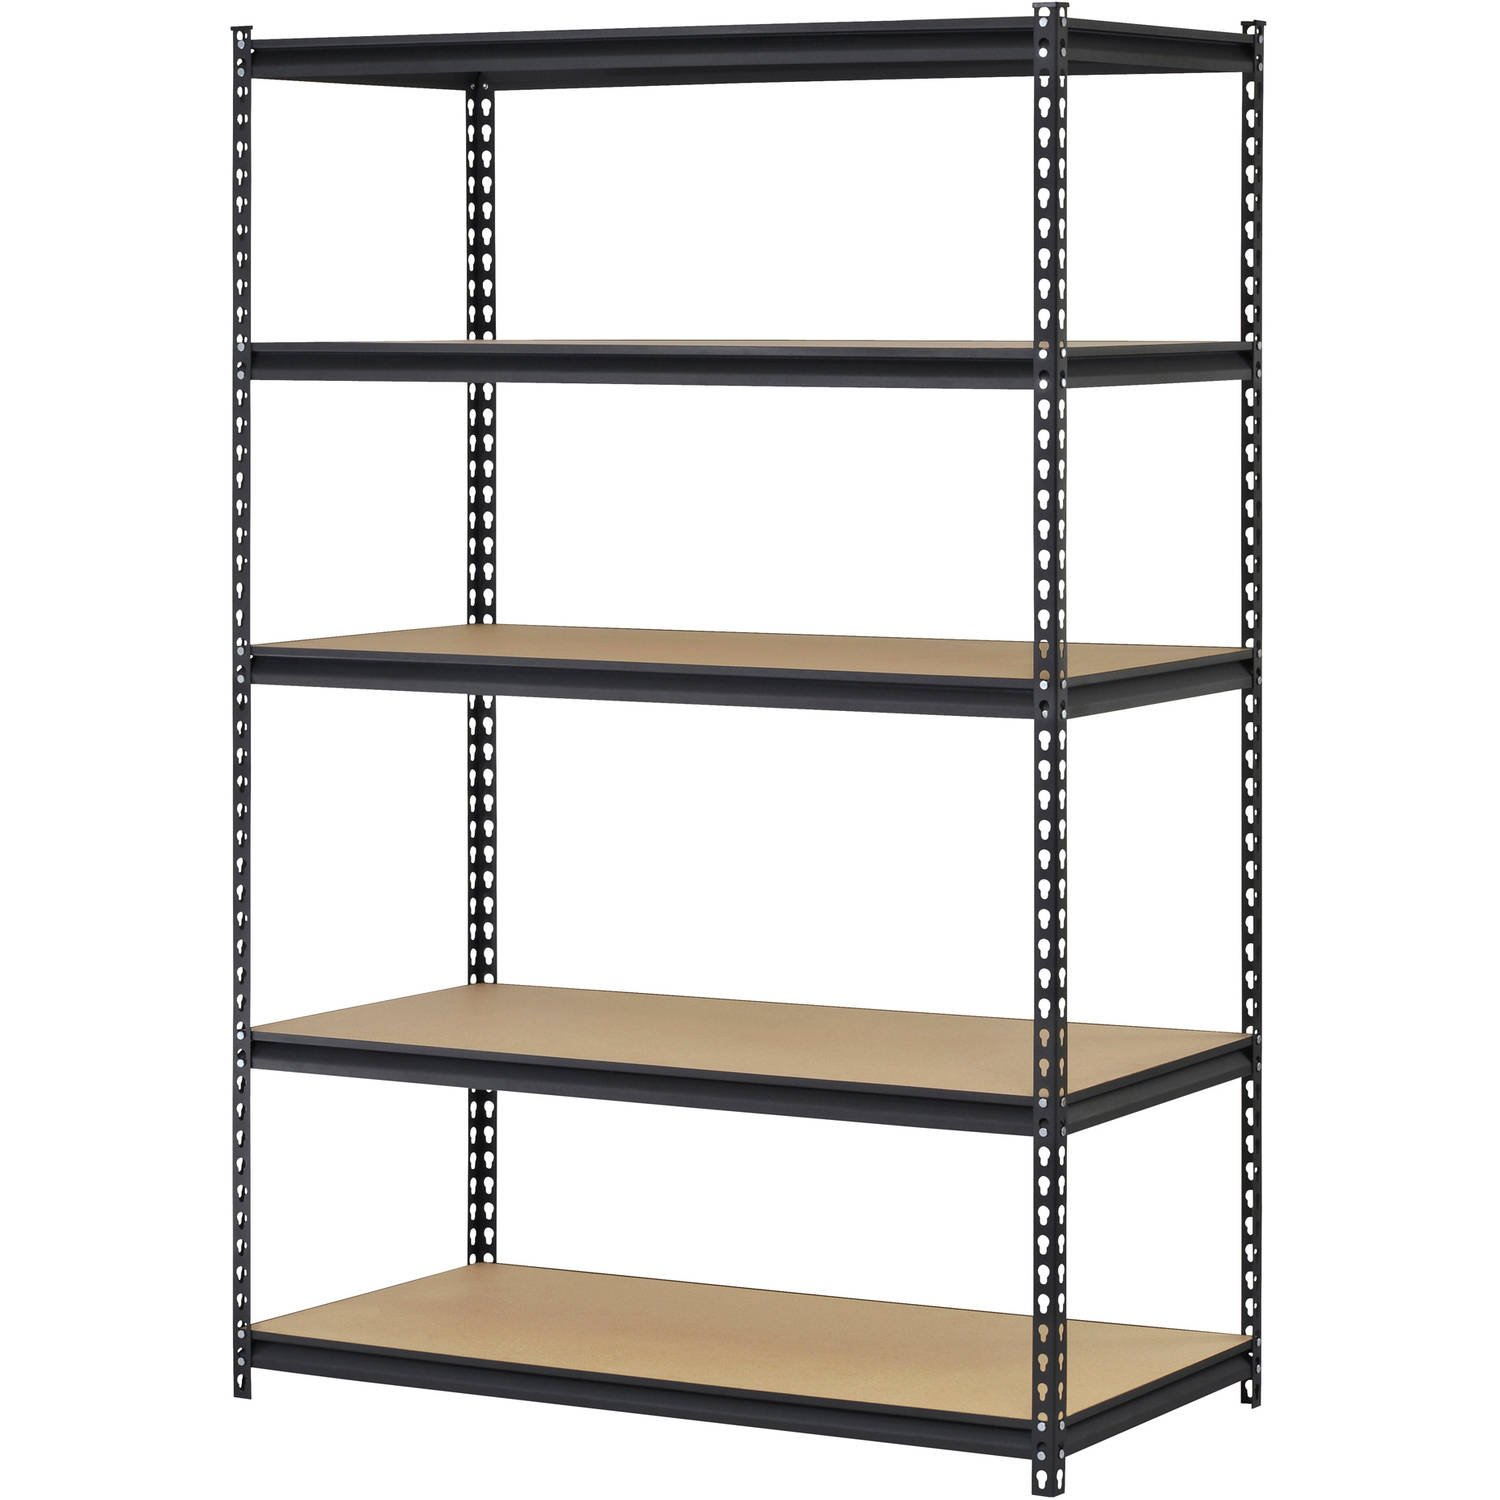 steel racks shelves duty shelving gauge shop industrial rack product quantum storage tools heavy